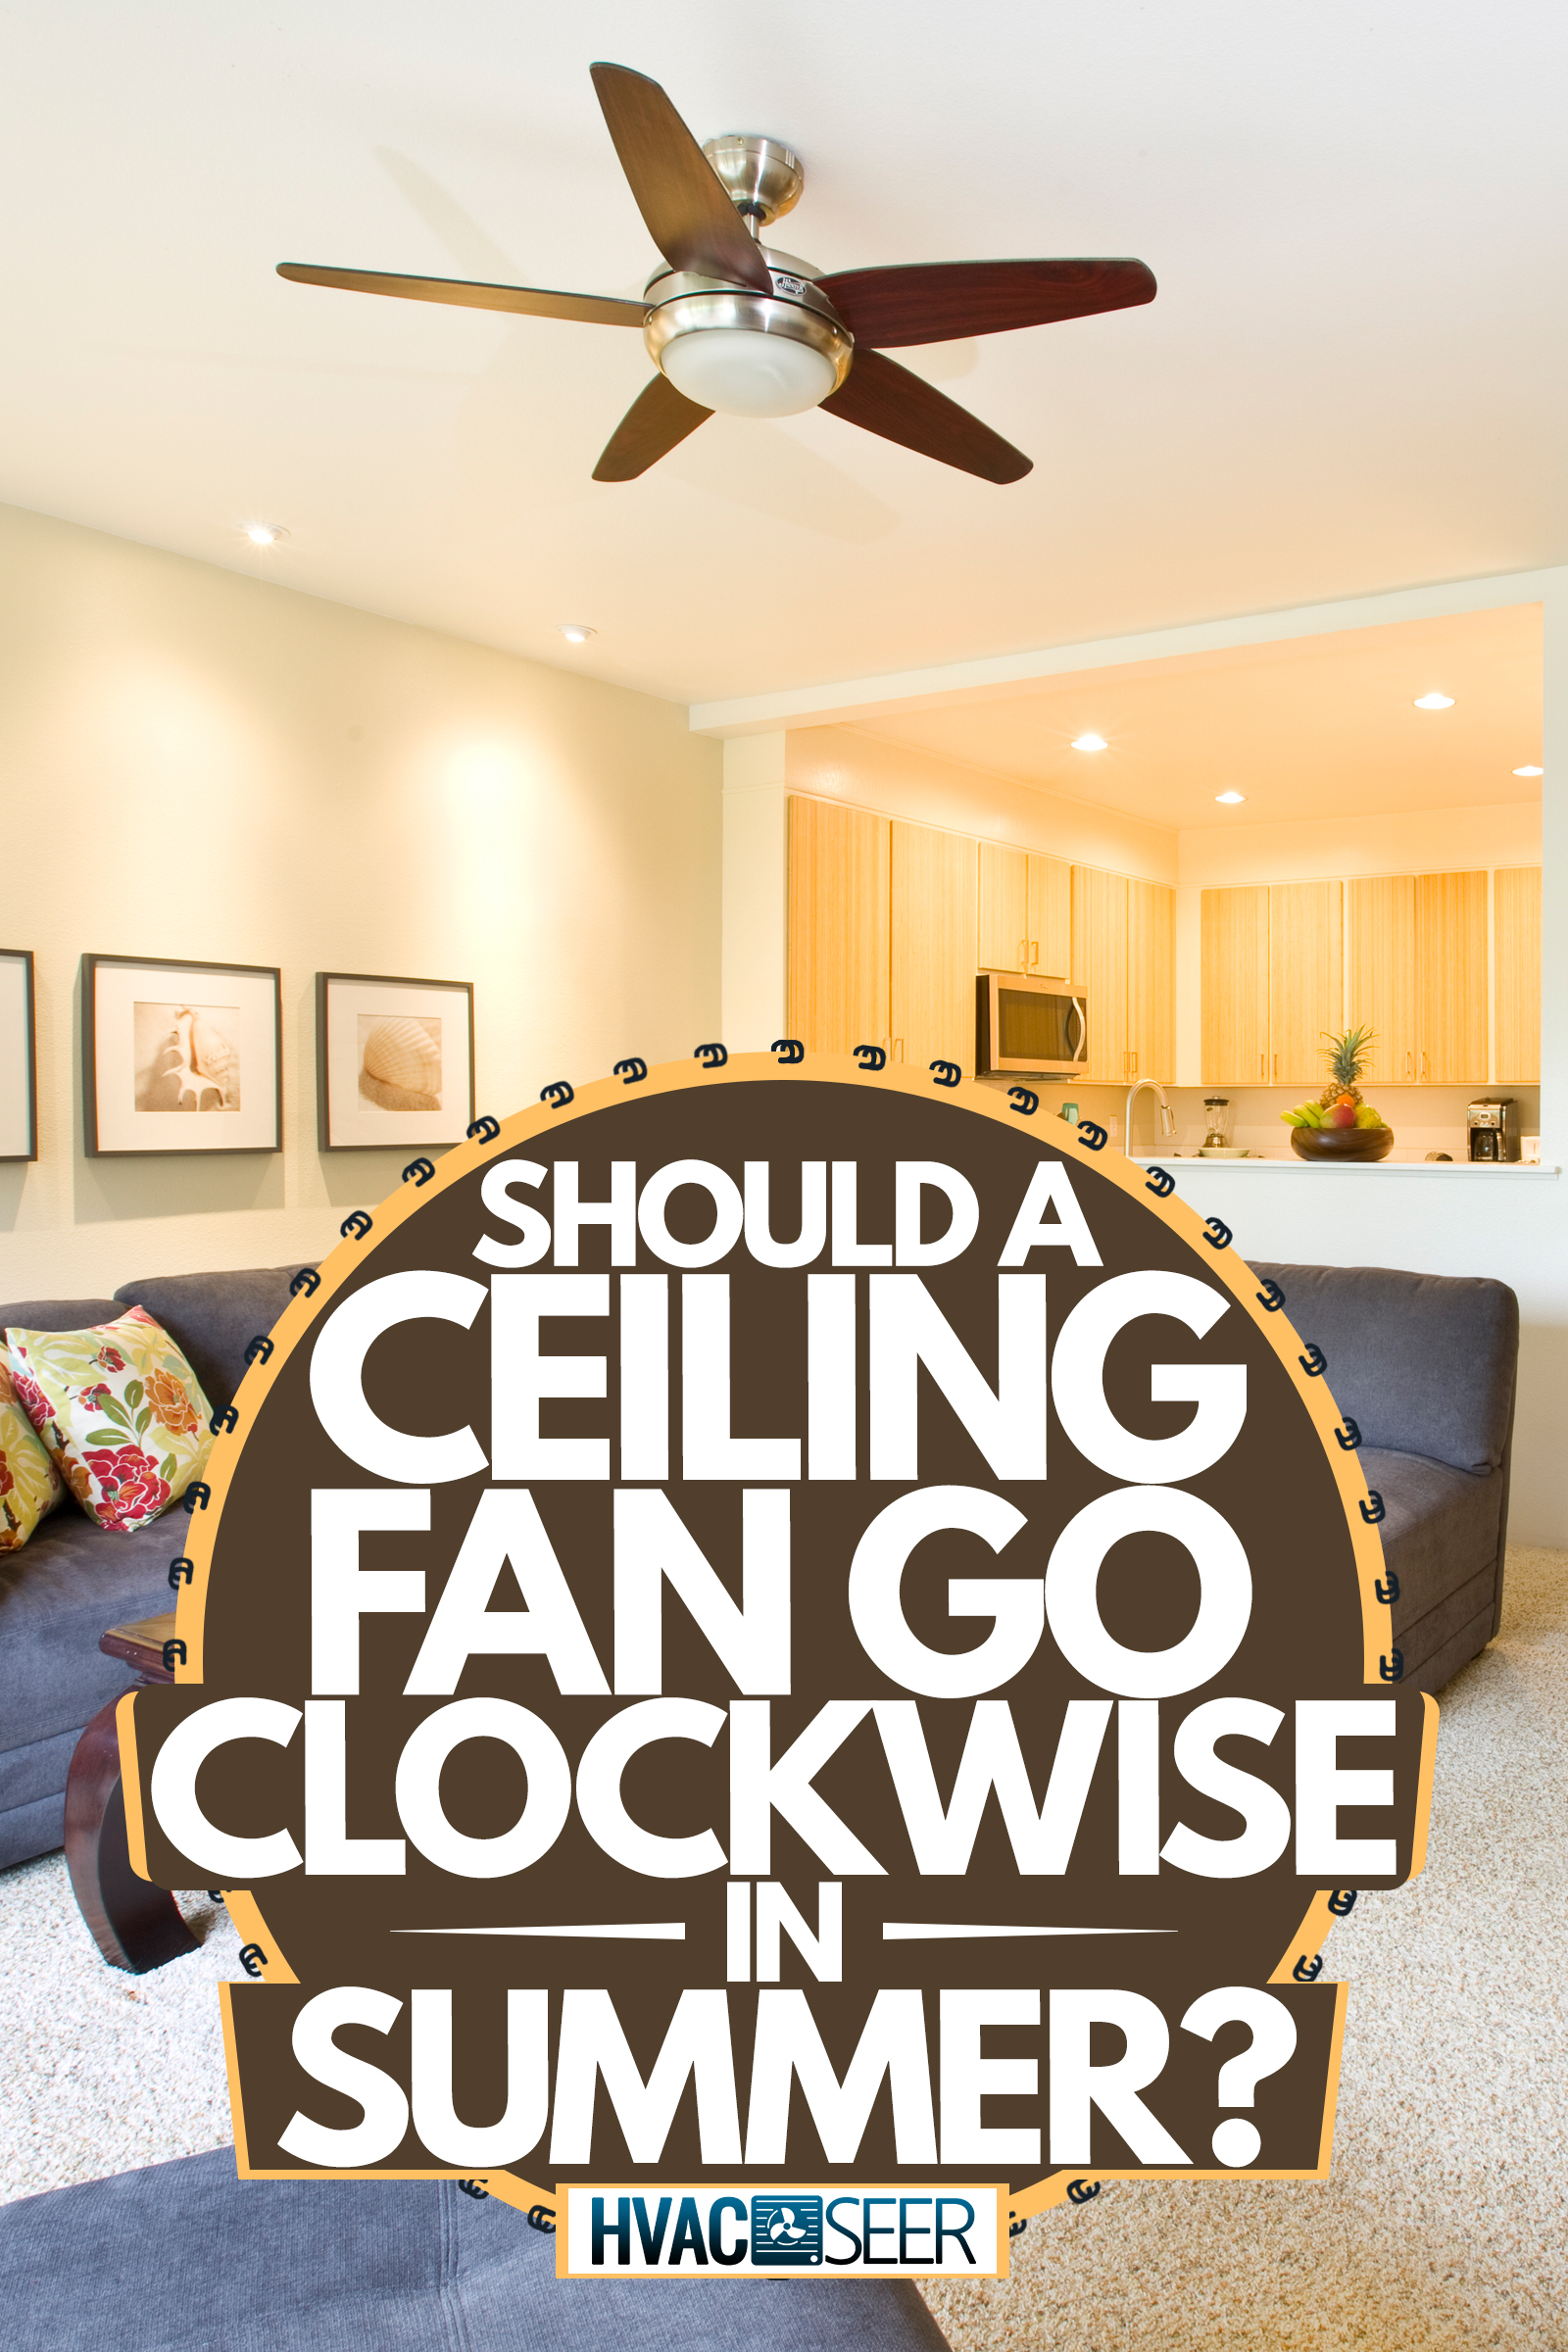 A classic tropical beach themed living room with white painted walls, gray couches, and a ceiling fan with wooden blades, Should A Ceiling Fan Go Clockwise In Summer?